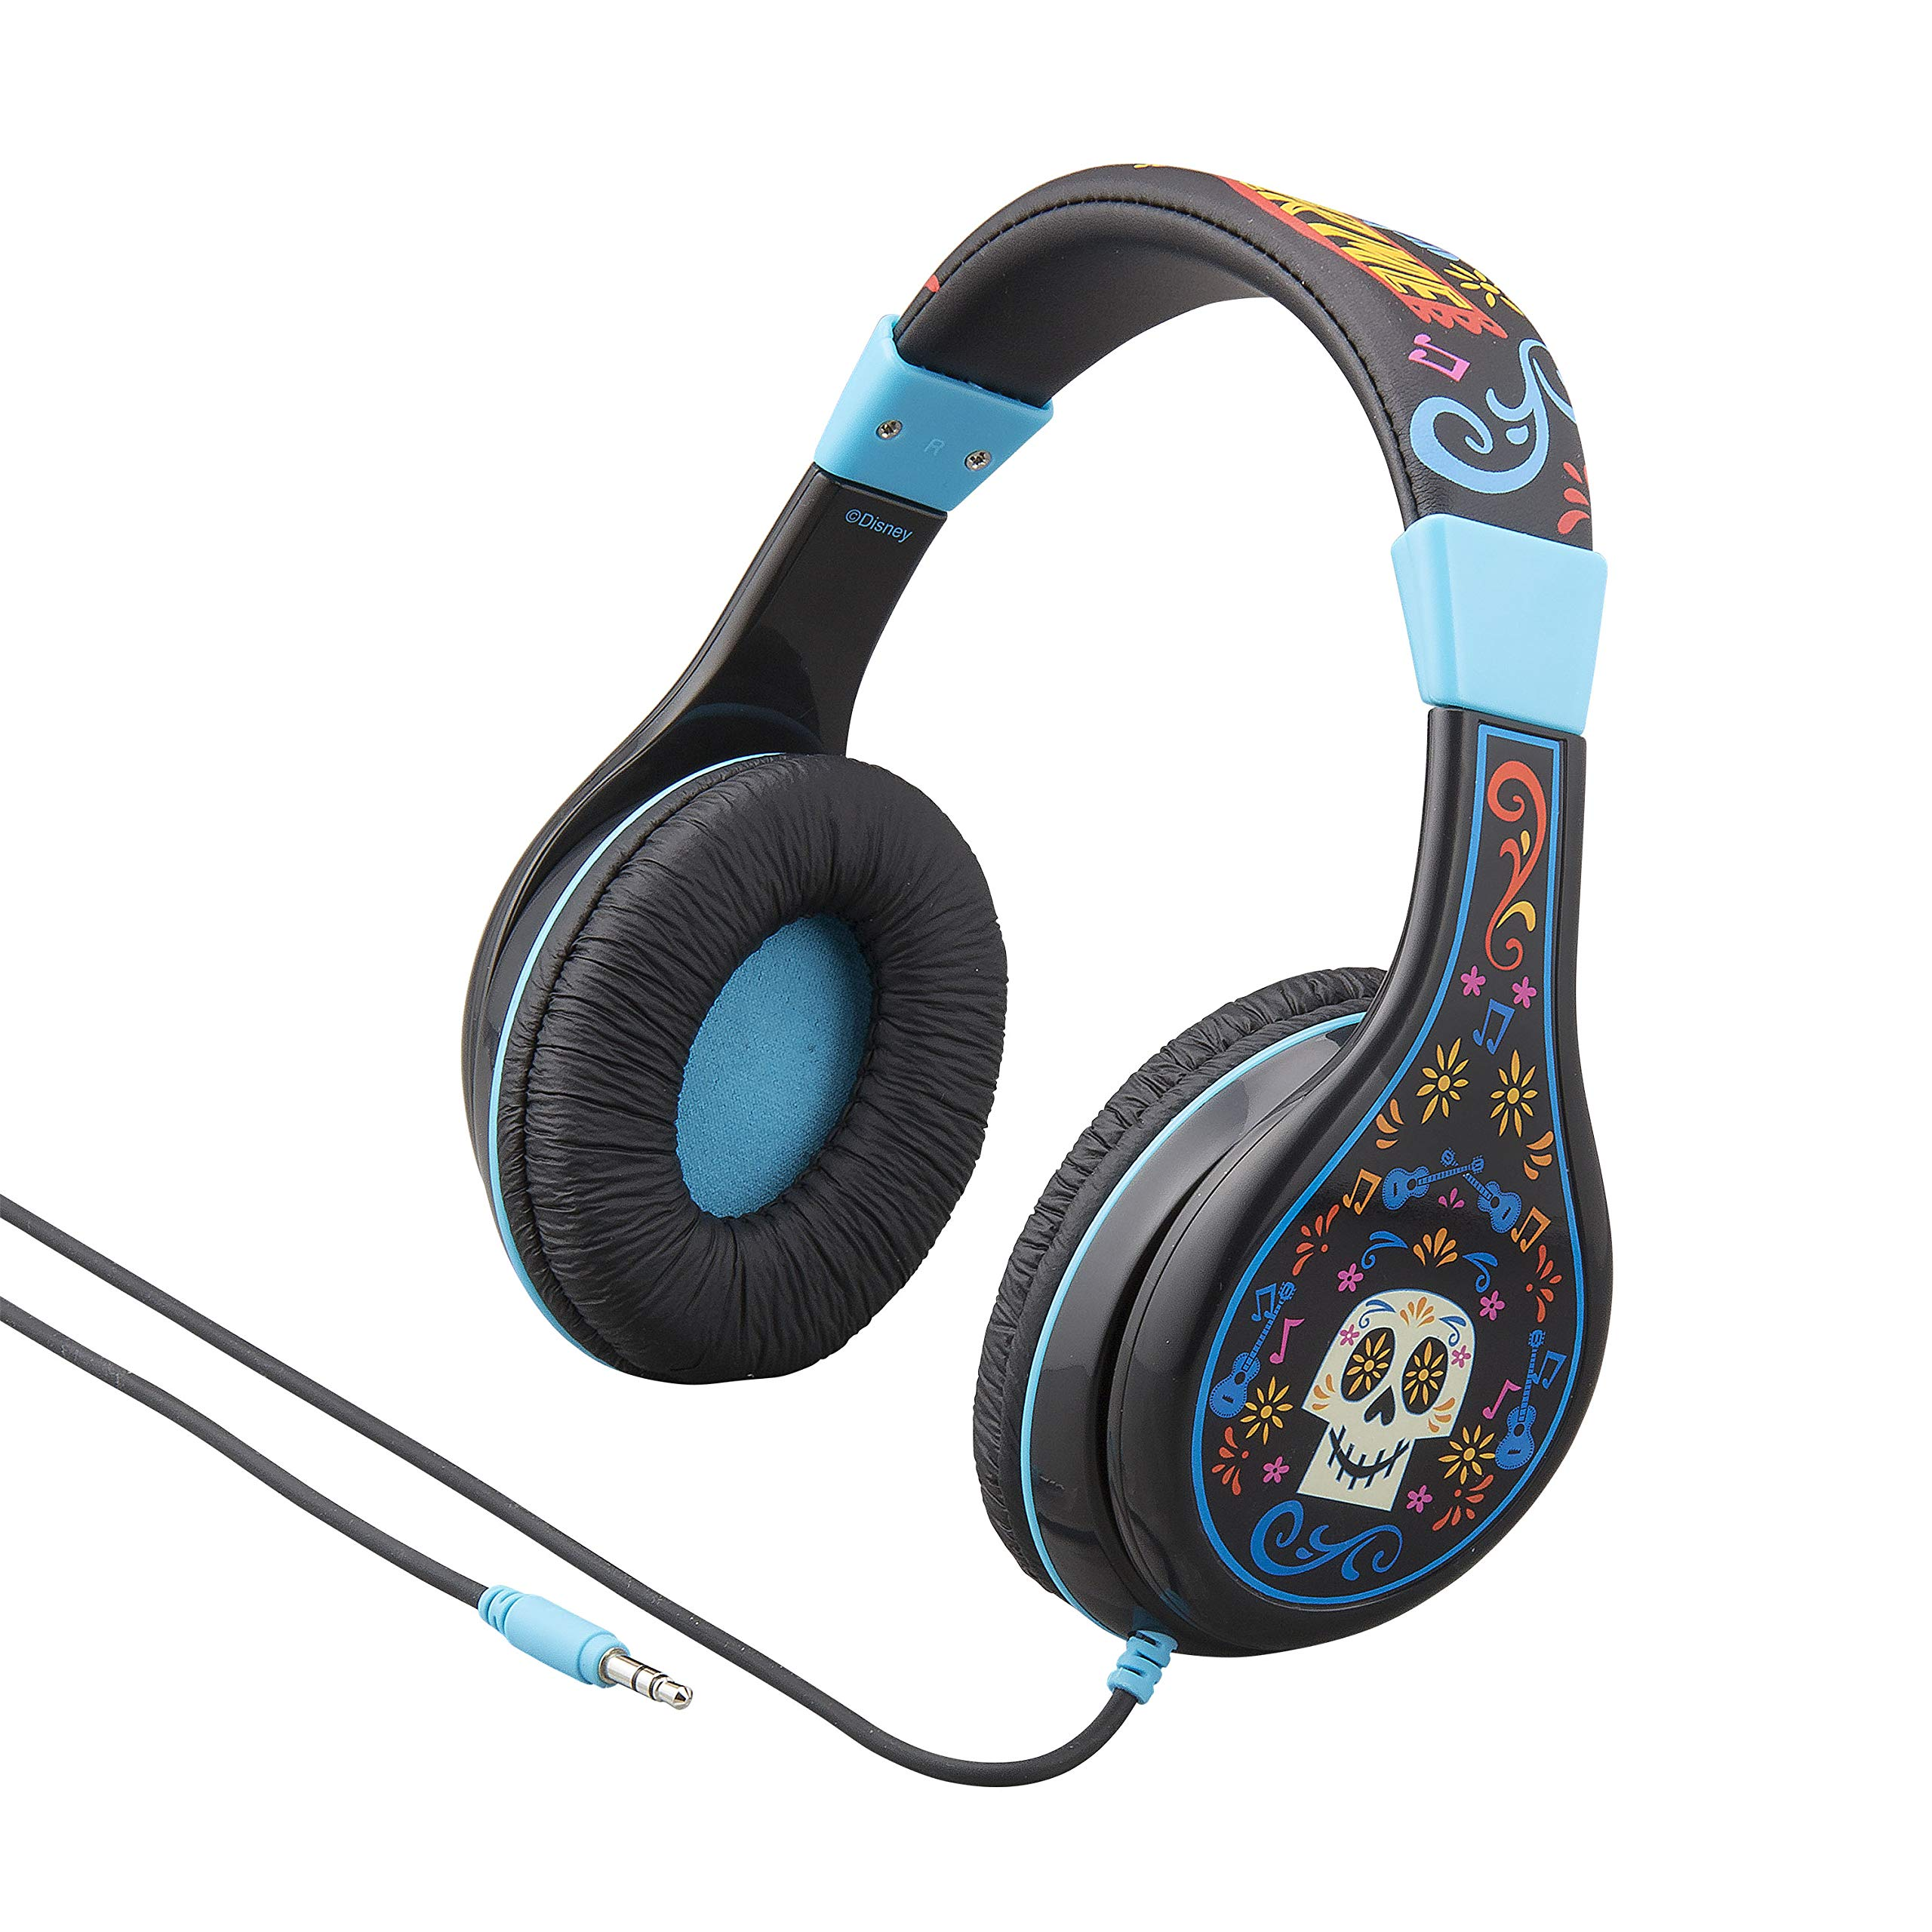 Coco Headphones for Kids with Built in Volume Limiting Feature for Kid Friendly Safe Listening